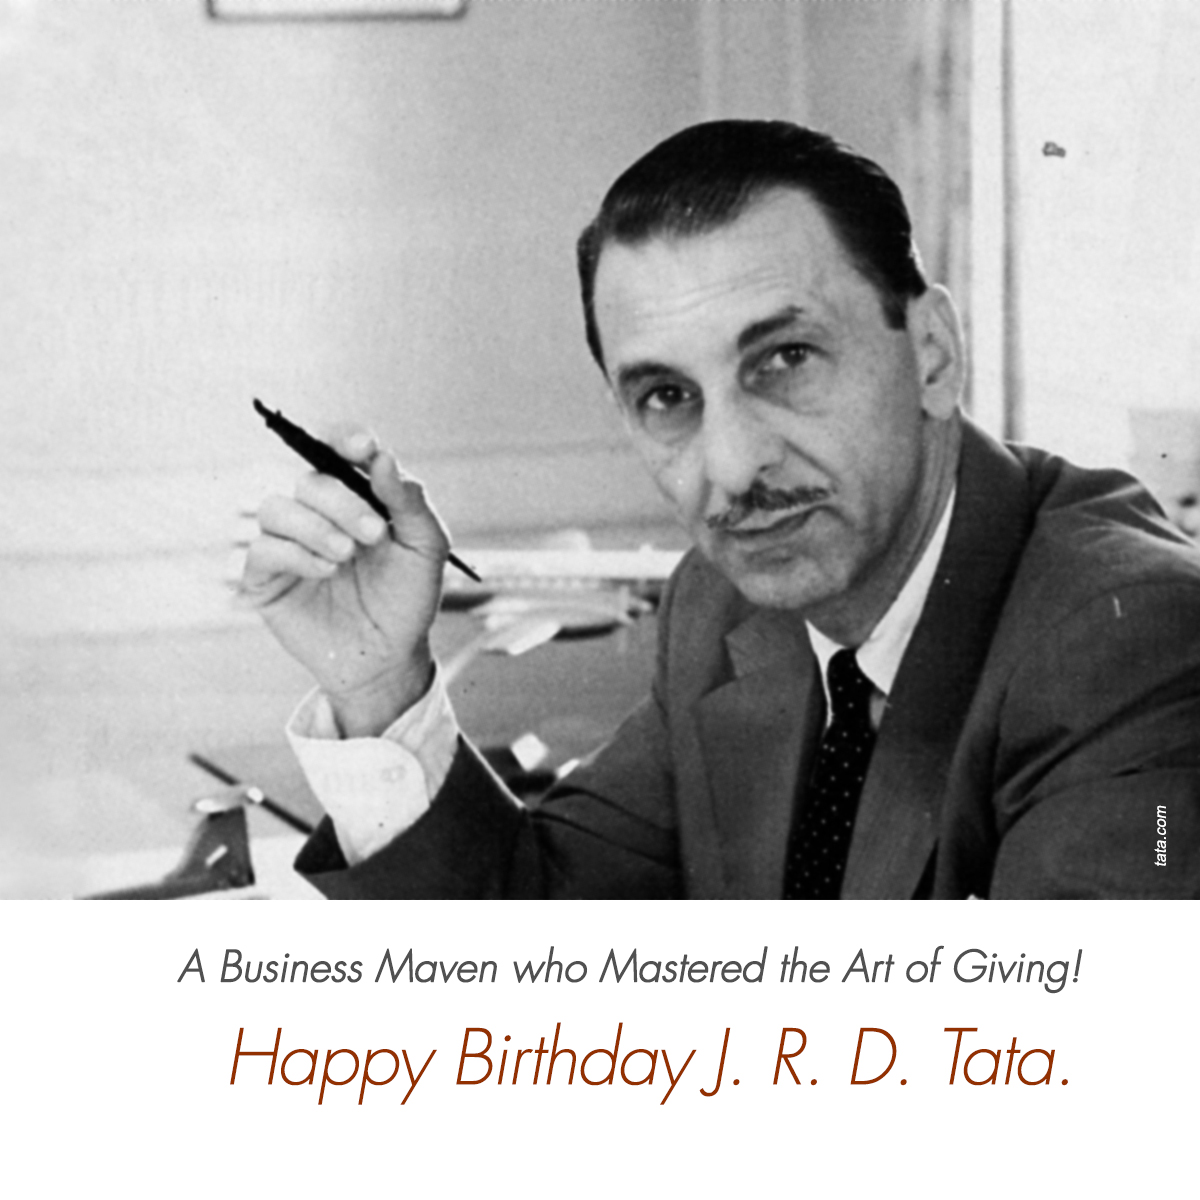 He always crossed bridges to know what lay ahead. He was an innovator & industrialist by profession, but a philanthropist at heart. Happy Birthday J. R. D. Tata! #AlmalInspiredSpaces #JehangirRatanjiDadabhoyTata #Innovator #Industrialist #Philanthropist #Entrepreneurpic.twitter.com/WbcvZa9BfY